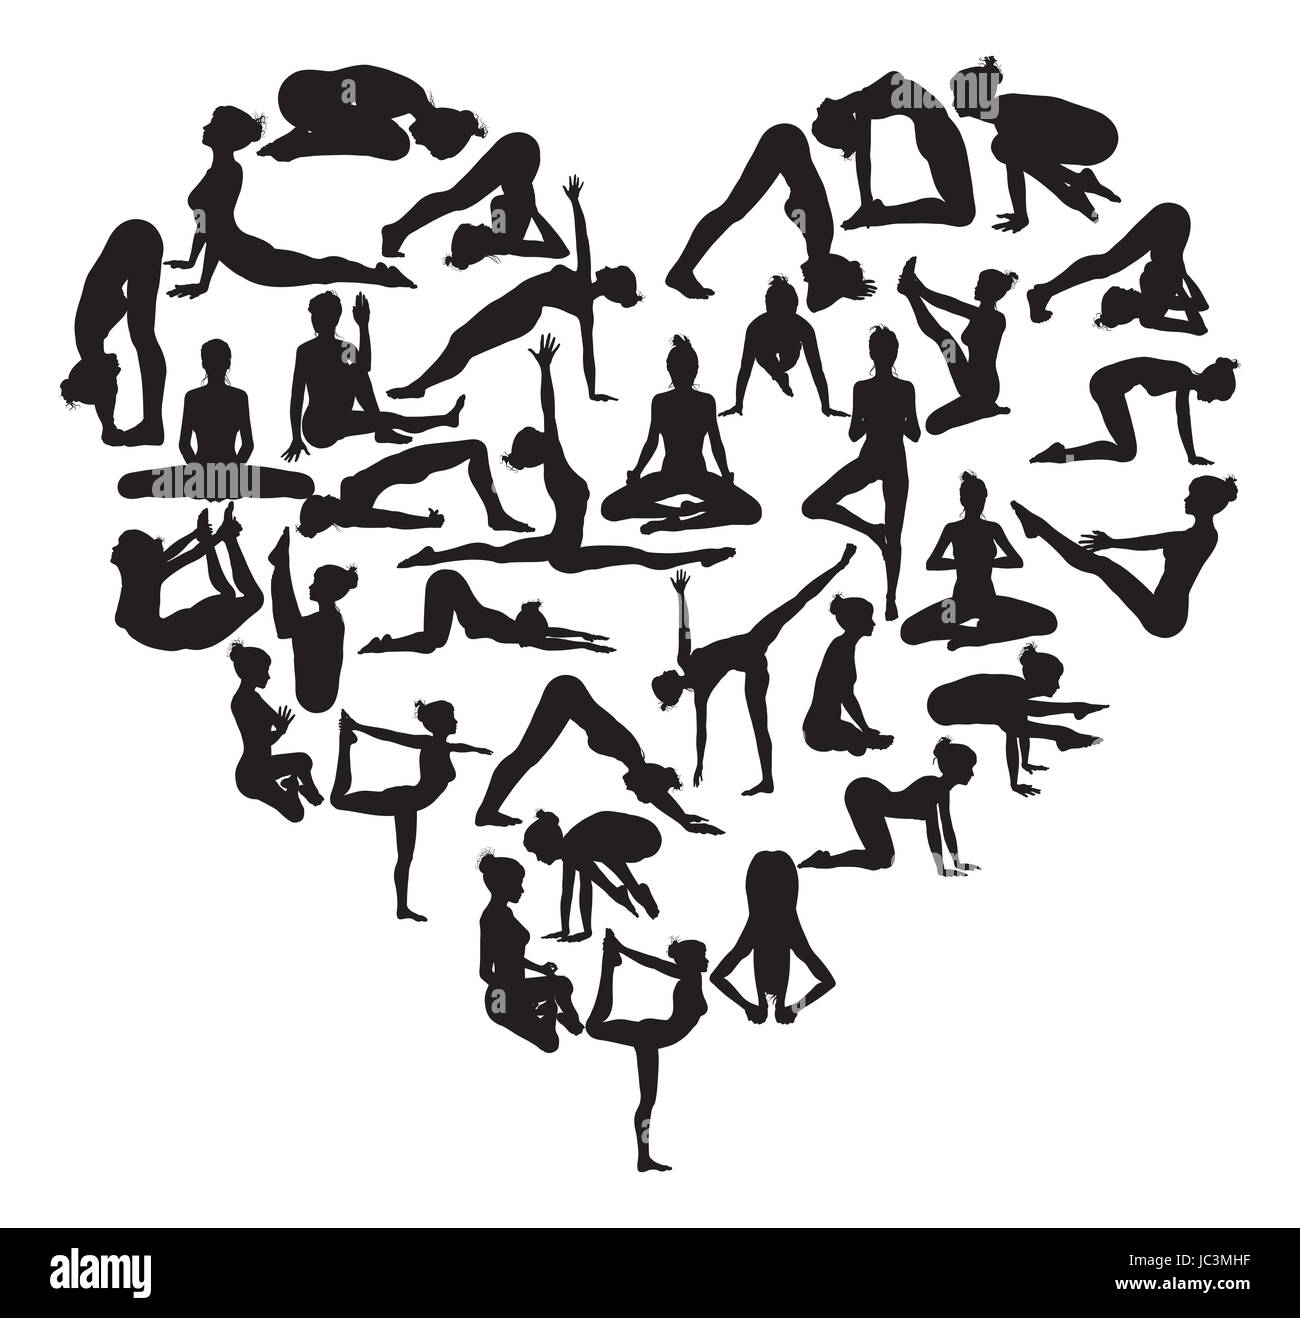 A heart shape made from silhouettes in yoga or pilates poses - Stock Image